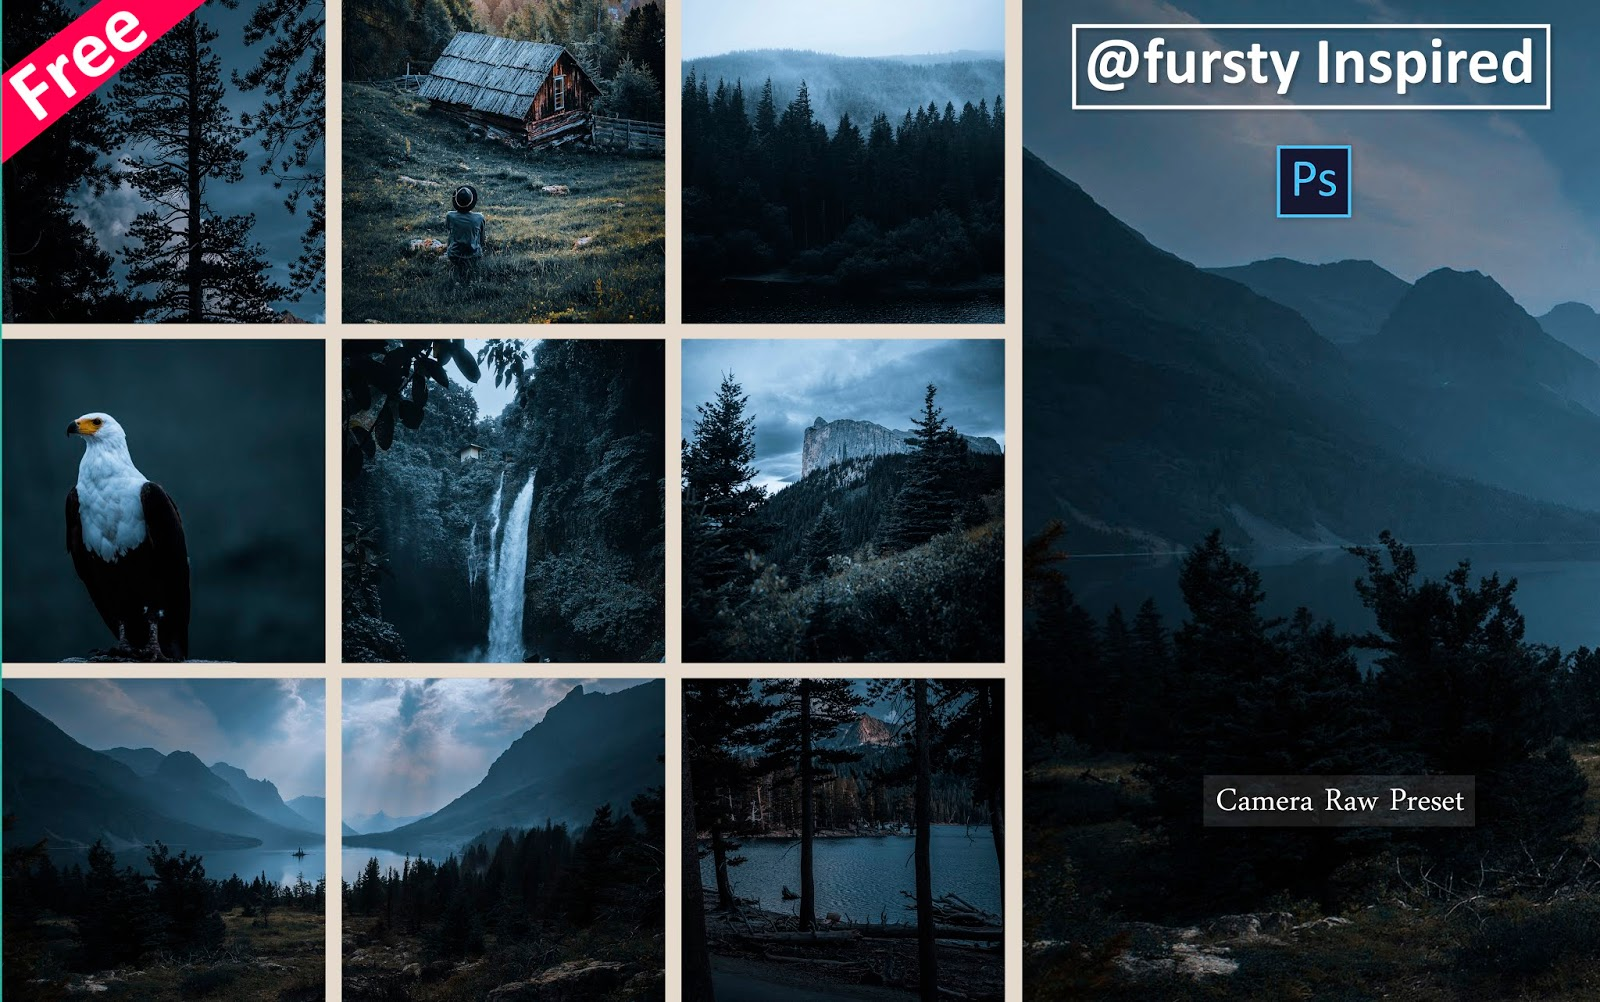 Download Fursty Inspired Camera Raw Preset for Free | How to Edit Photos Like Fursty in Photoshop